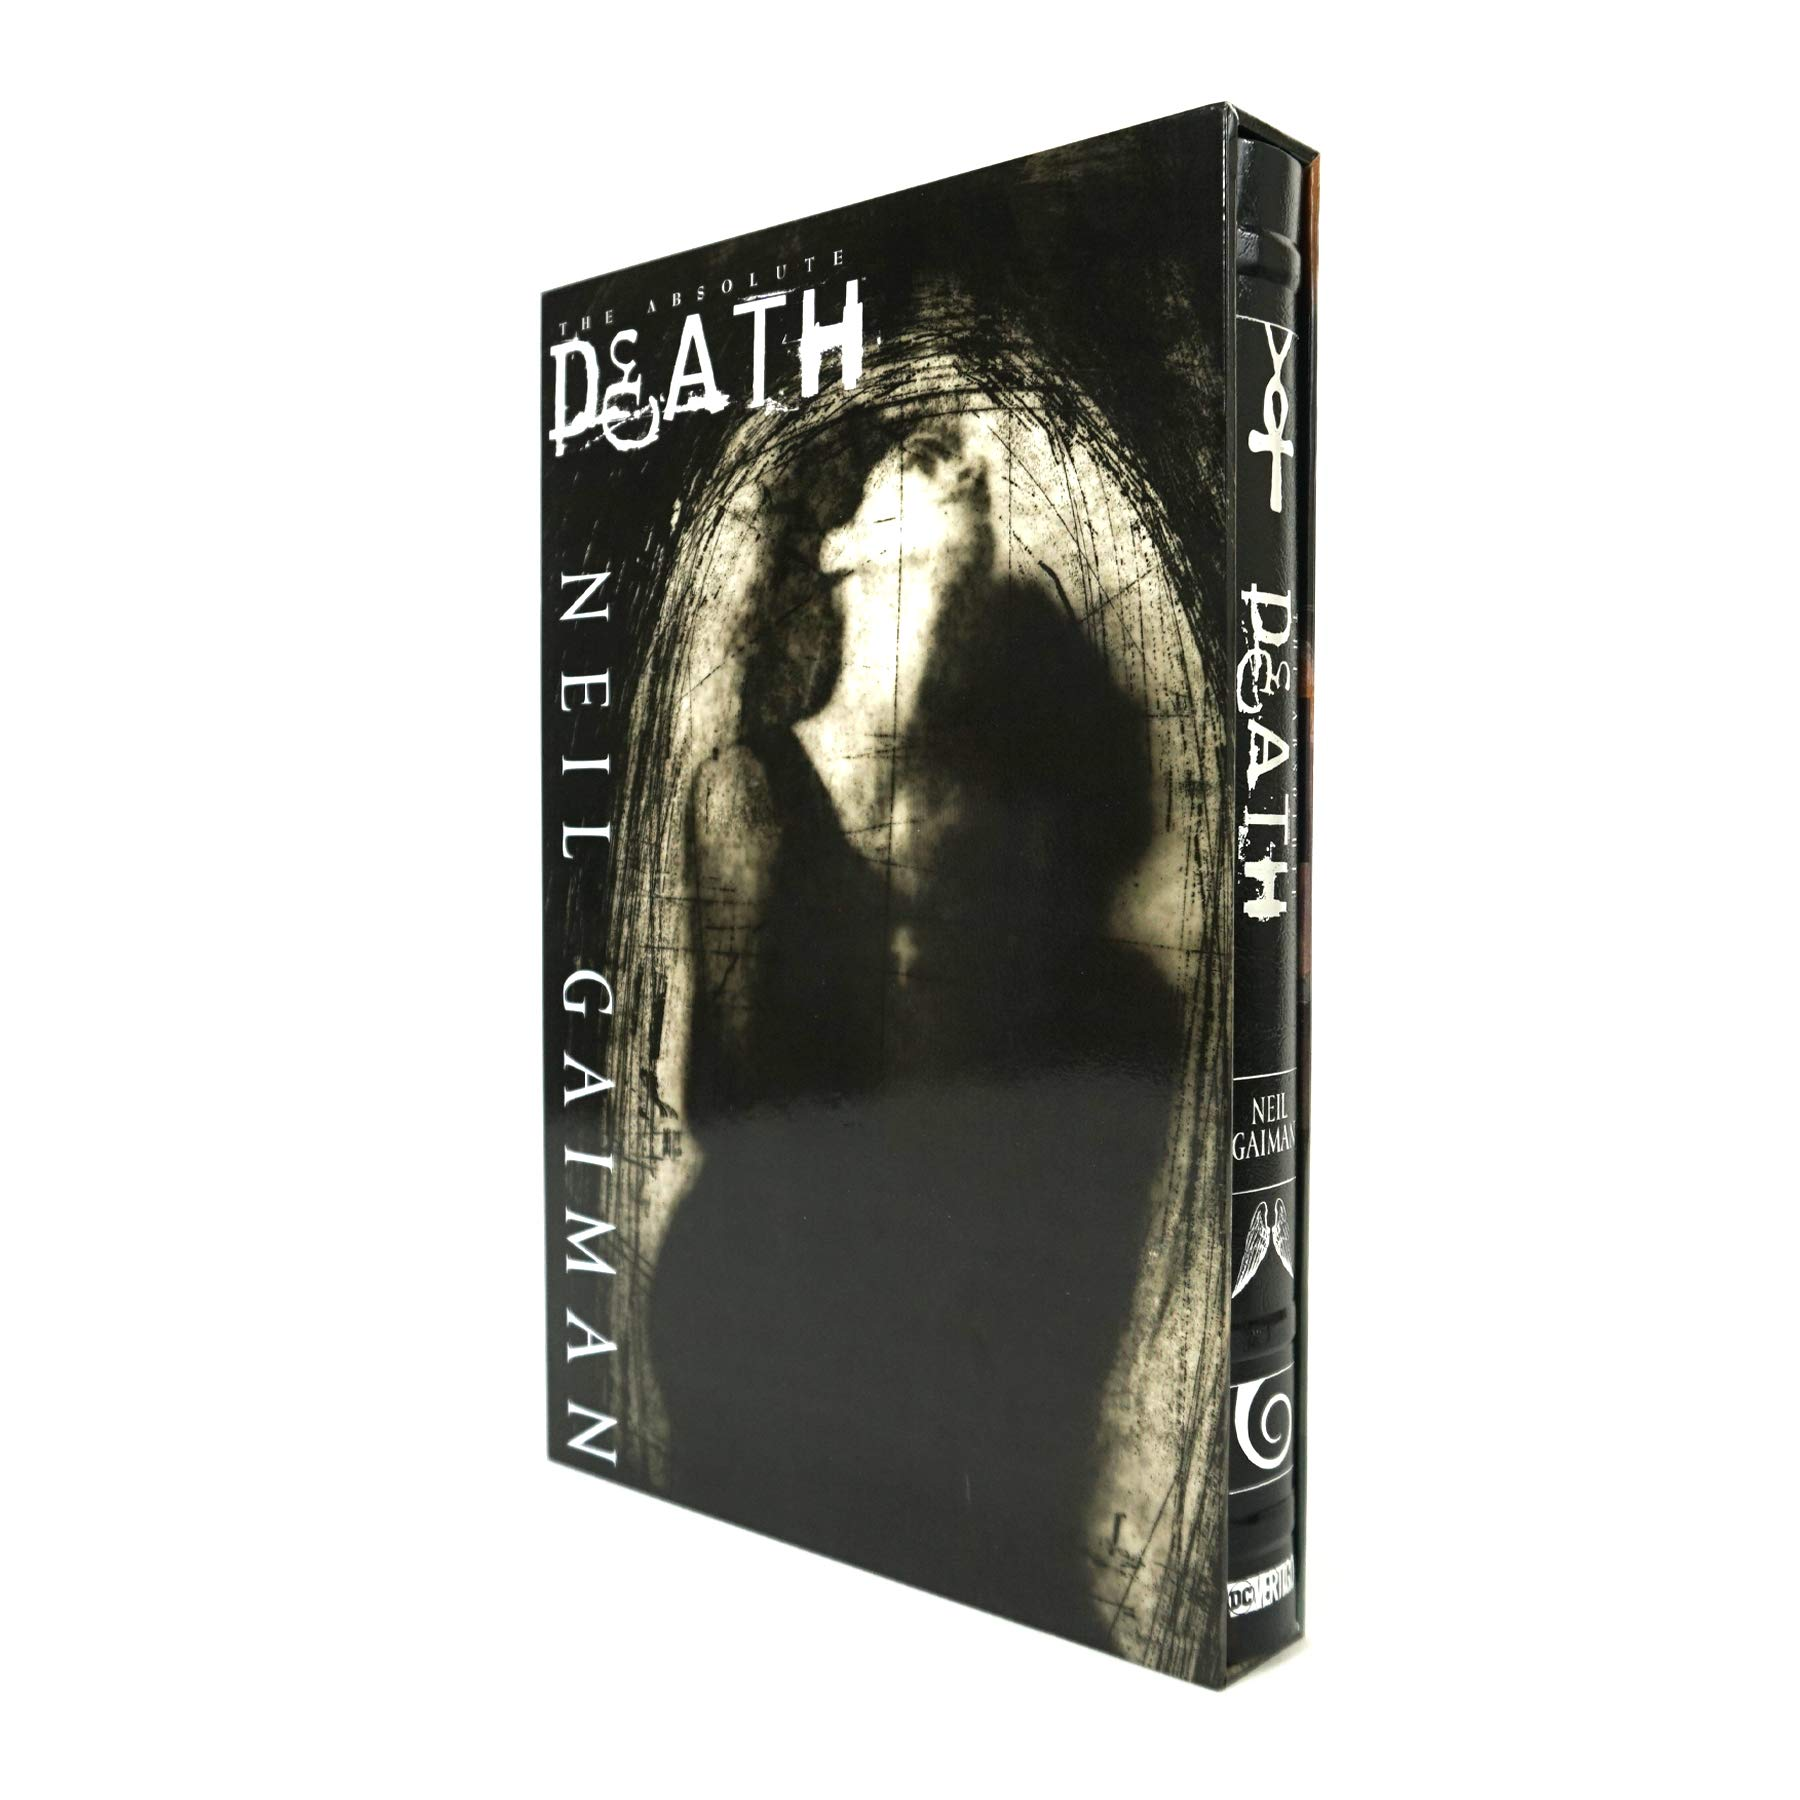 The Absolute Death: Slipcase HC - Used